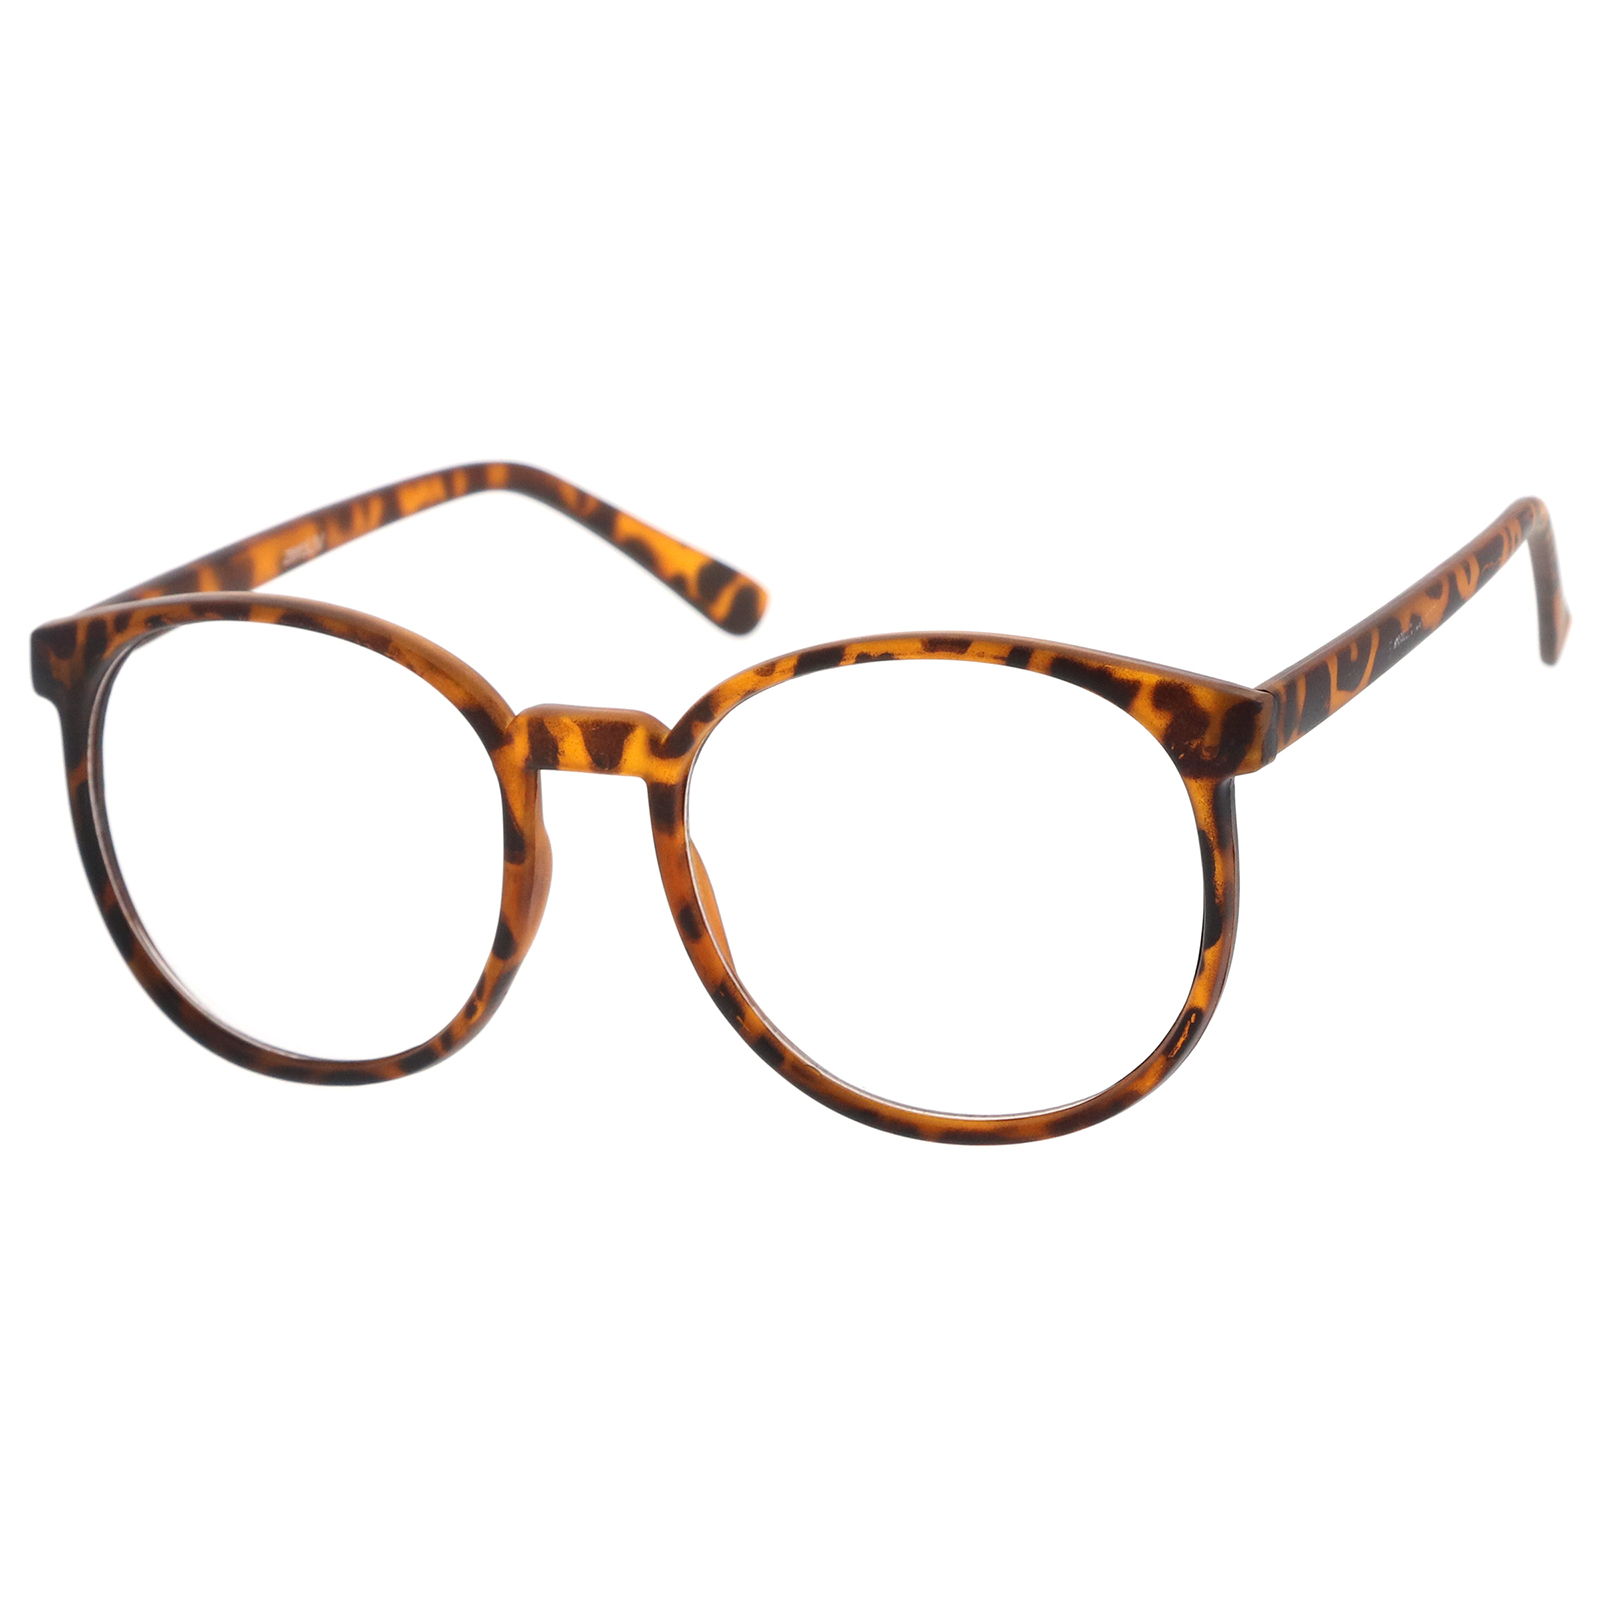 9480c85fabab4 zeroUV - Classic P3 Horn Rimmed Clear Lens Round Eyeglasses 53mm - 53mm -  Walmart.com